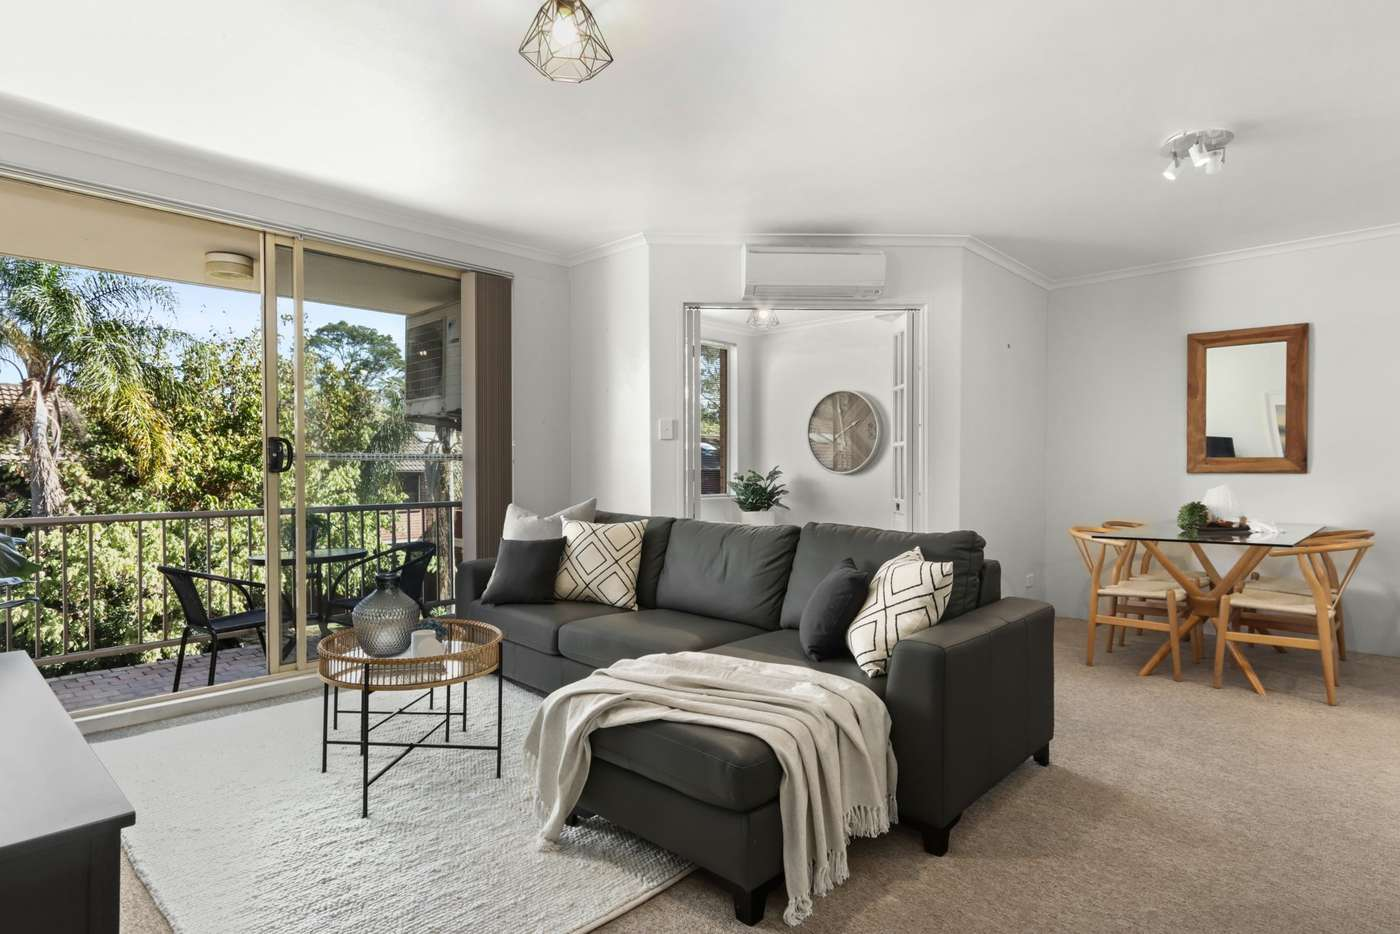 Main view of Homely apartment listing, 42/1 Ramu Close, Sylvania Waters NSW 2224